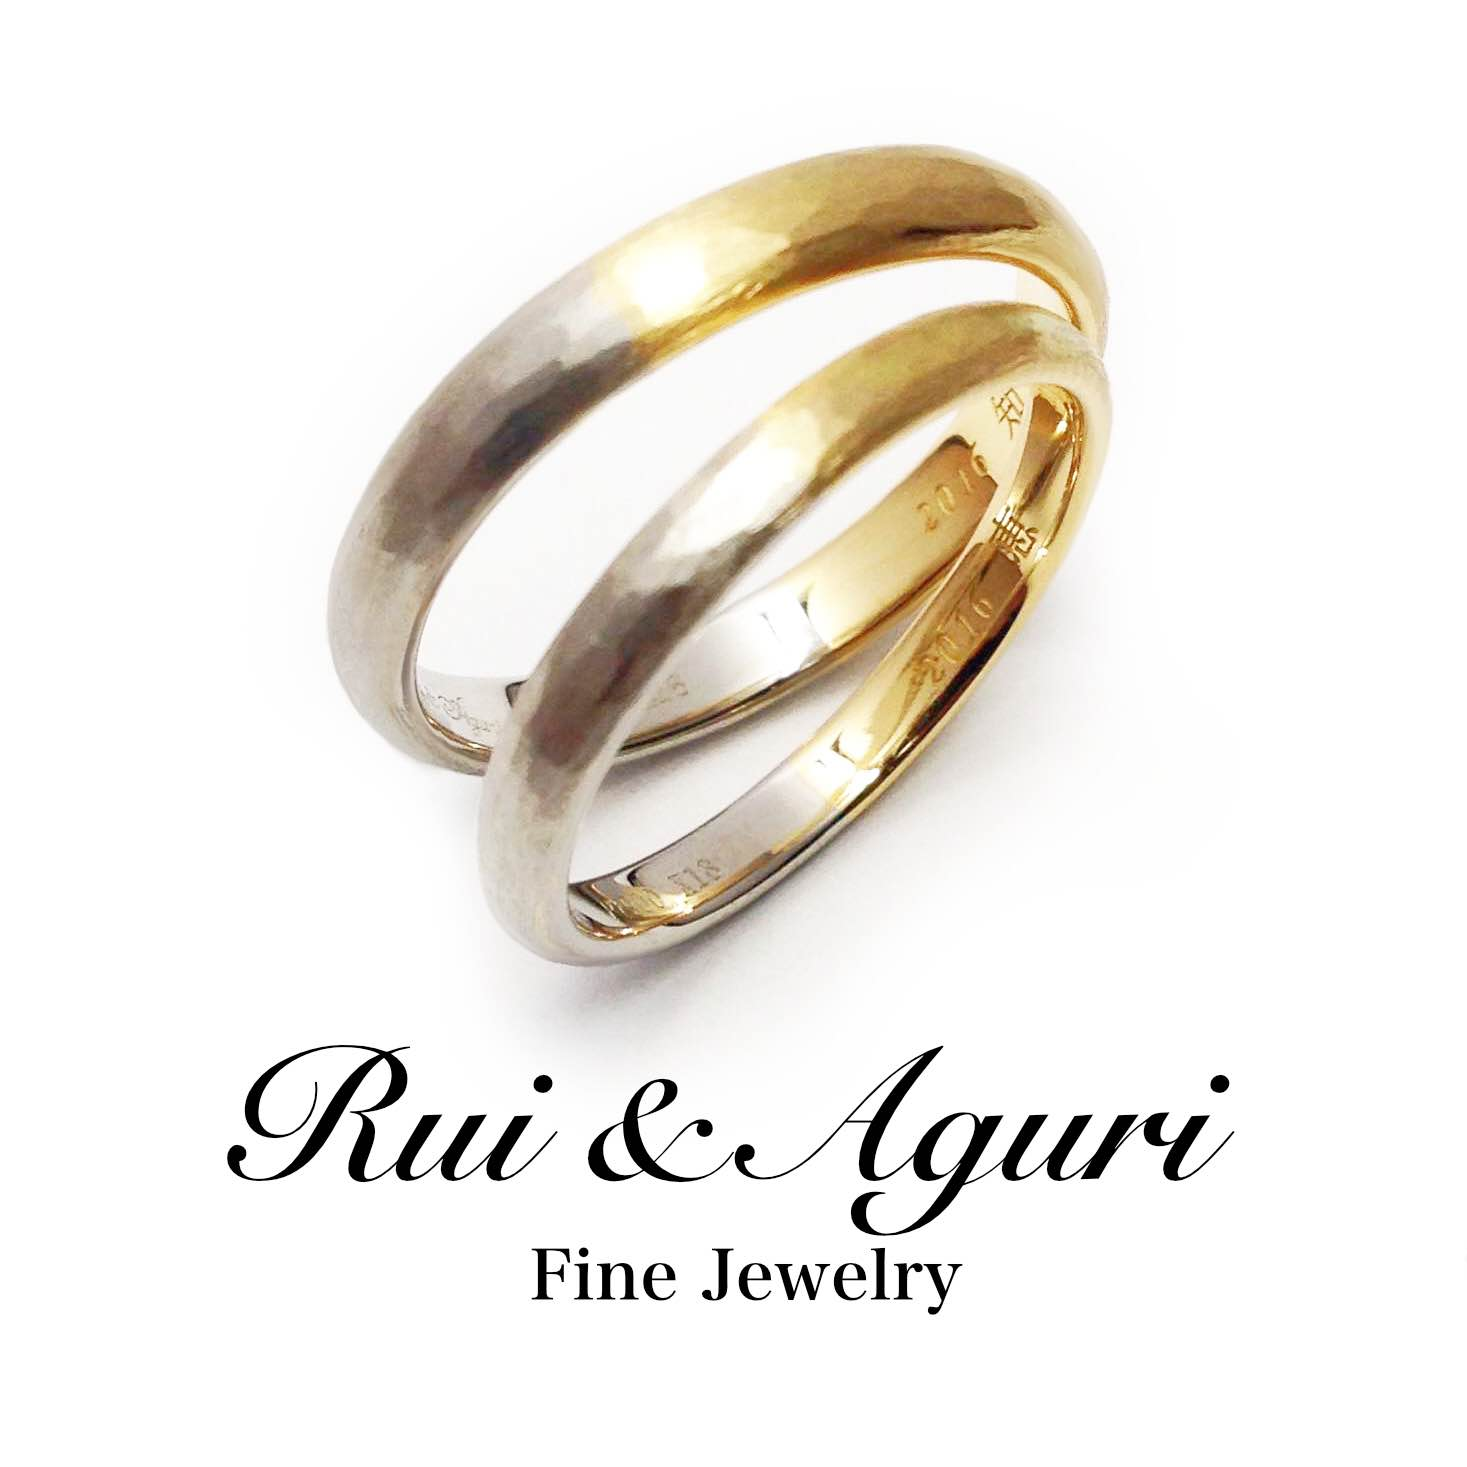 platinum gold wedding rings Rui & Aguri Fine Jewelry